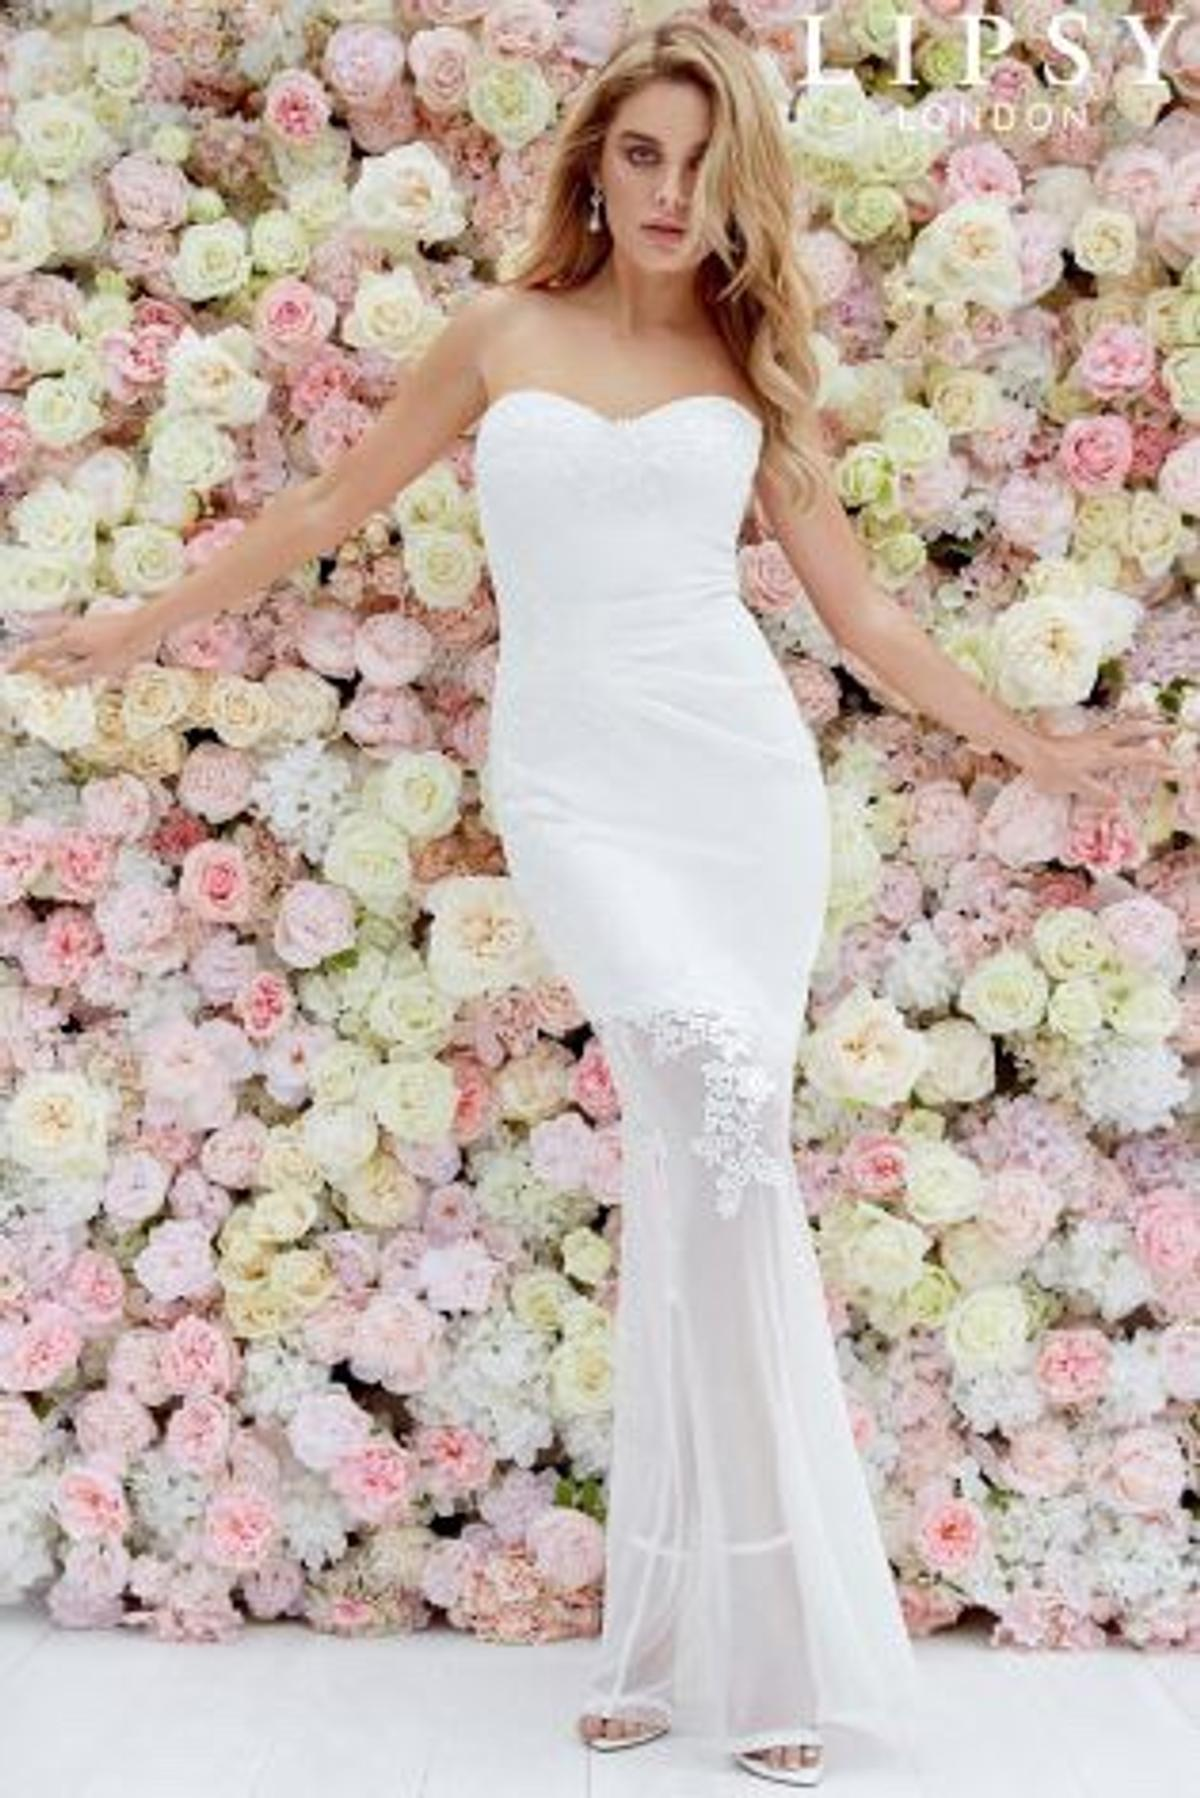 Embroidered Wedding Dress.Lipsy Lydia Bandeau Embroidered Bride Dress